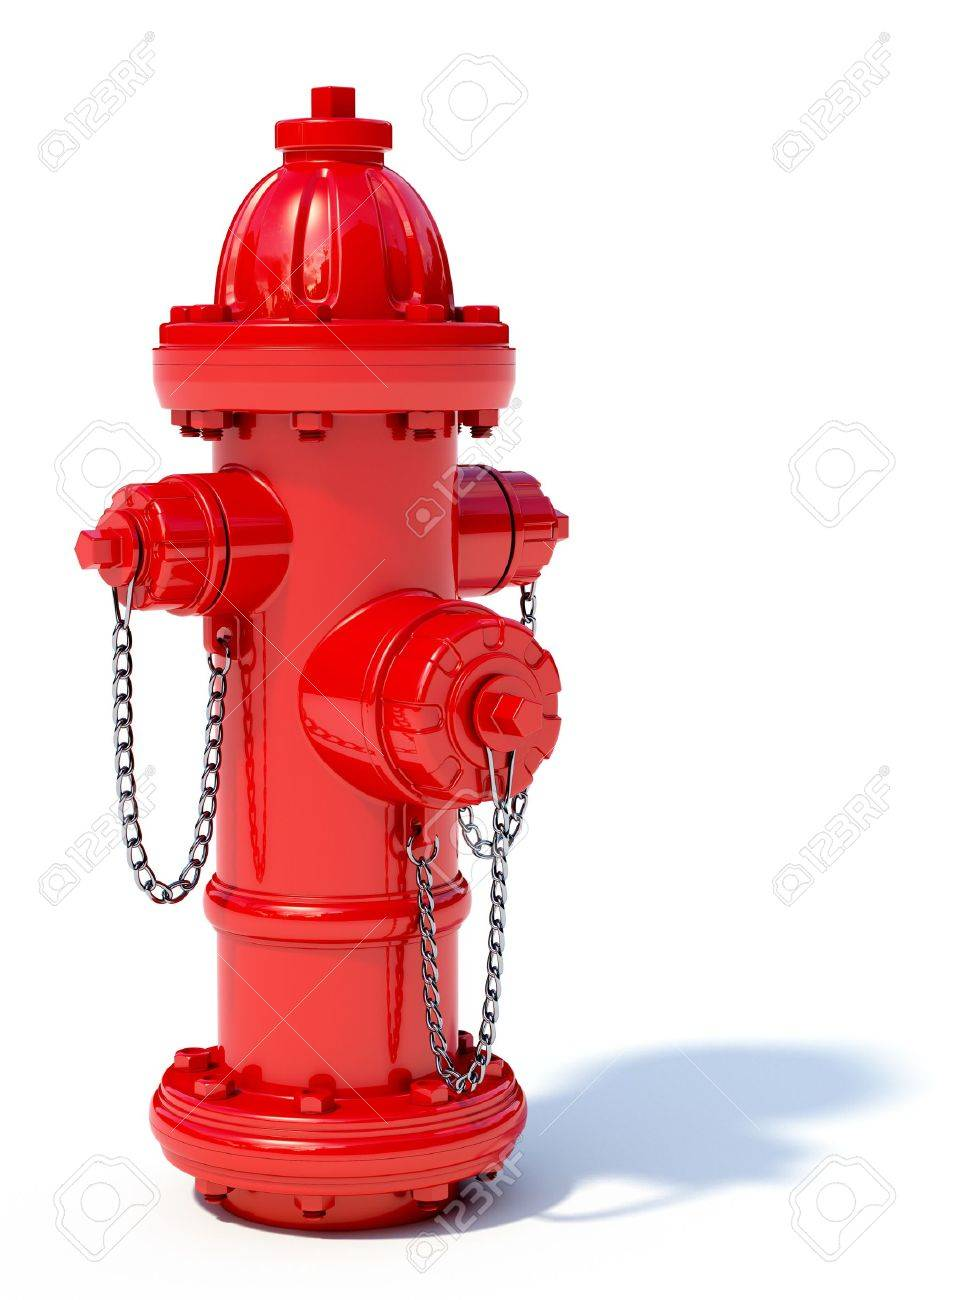 medium resolution of 3d illustration of red fire hydrant isolated on white background stock photo